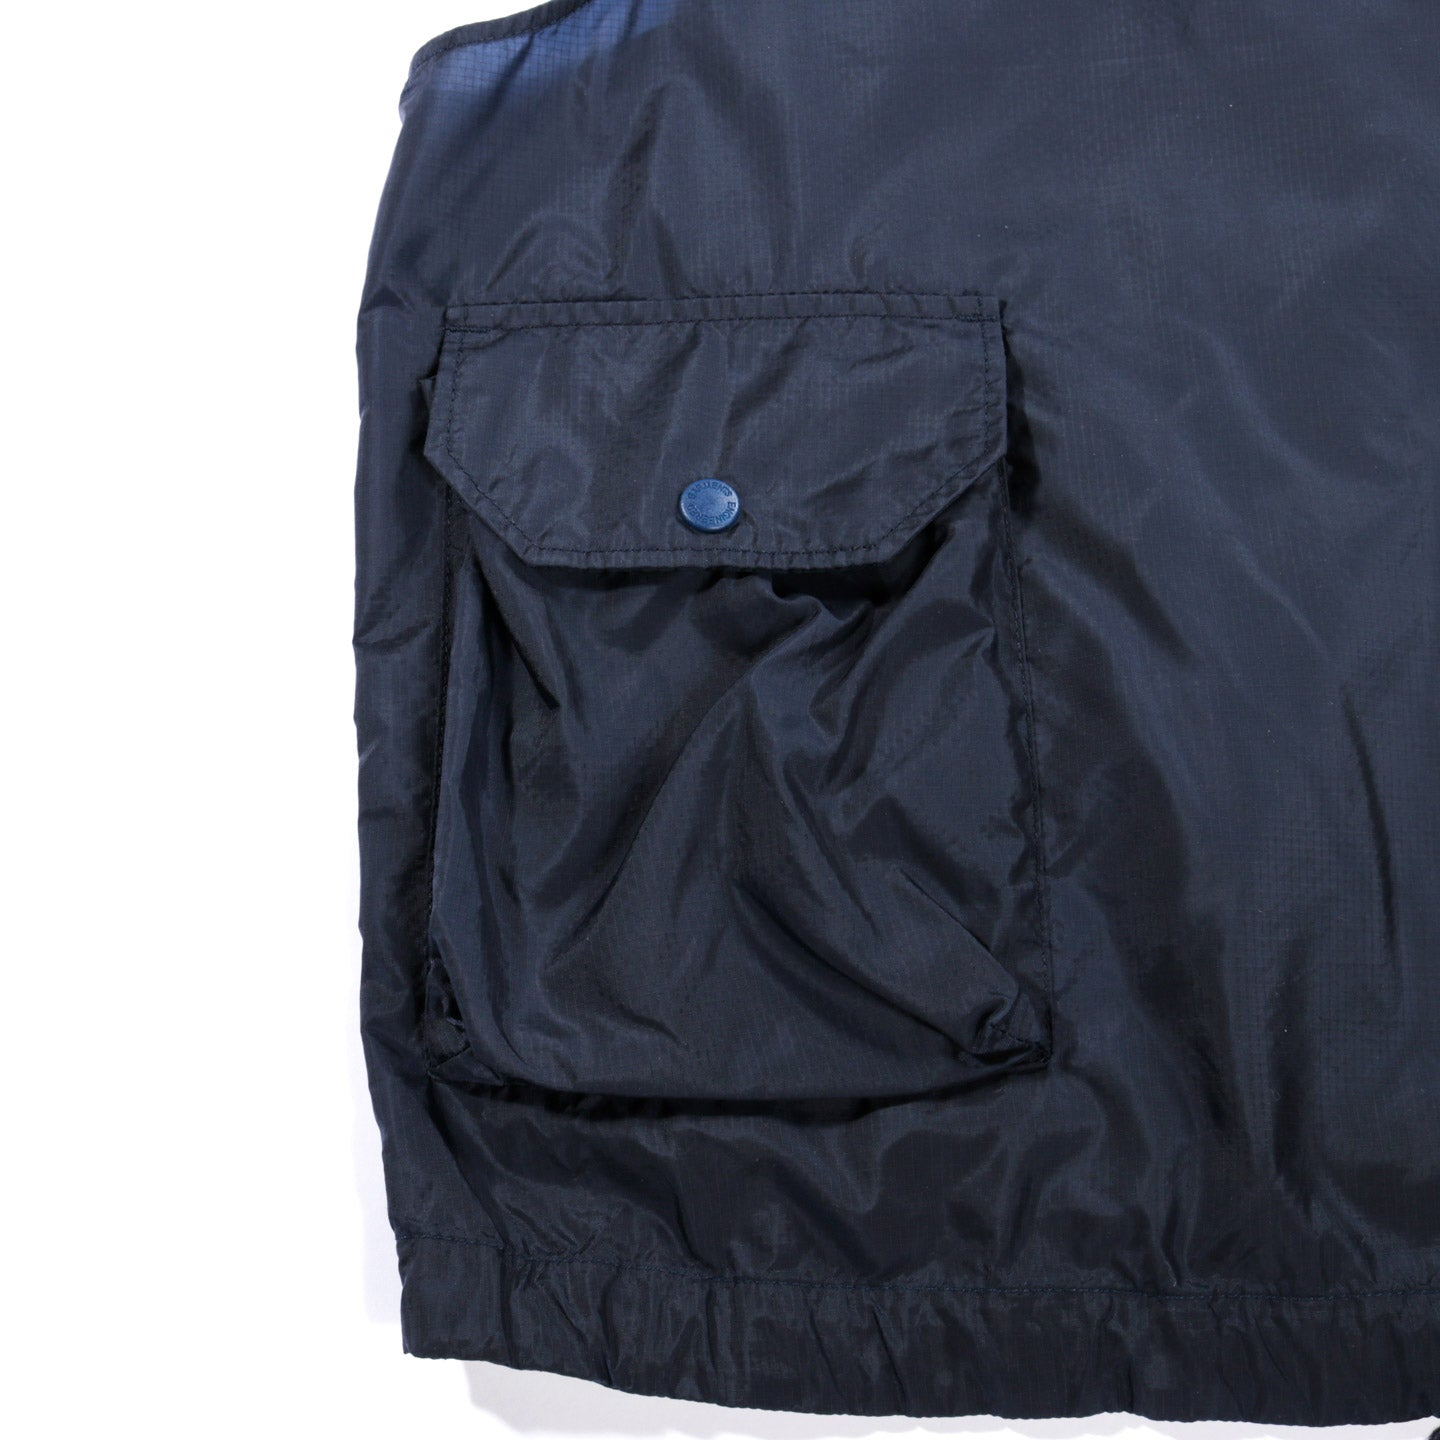 ENGINEERED GARMENTS ROUNDED COLLAR SHIRT DARK NAVY BROADCLOTH